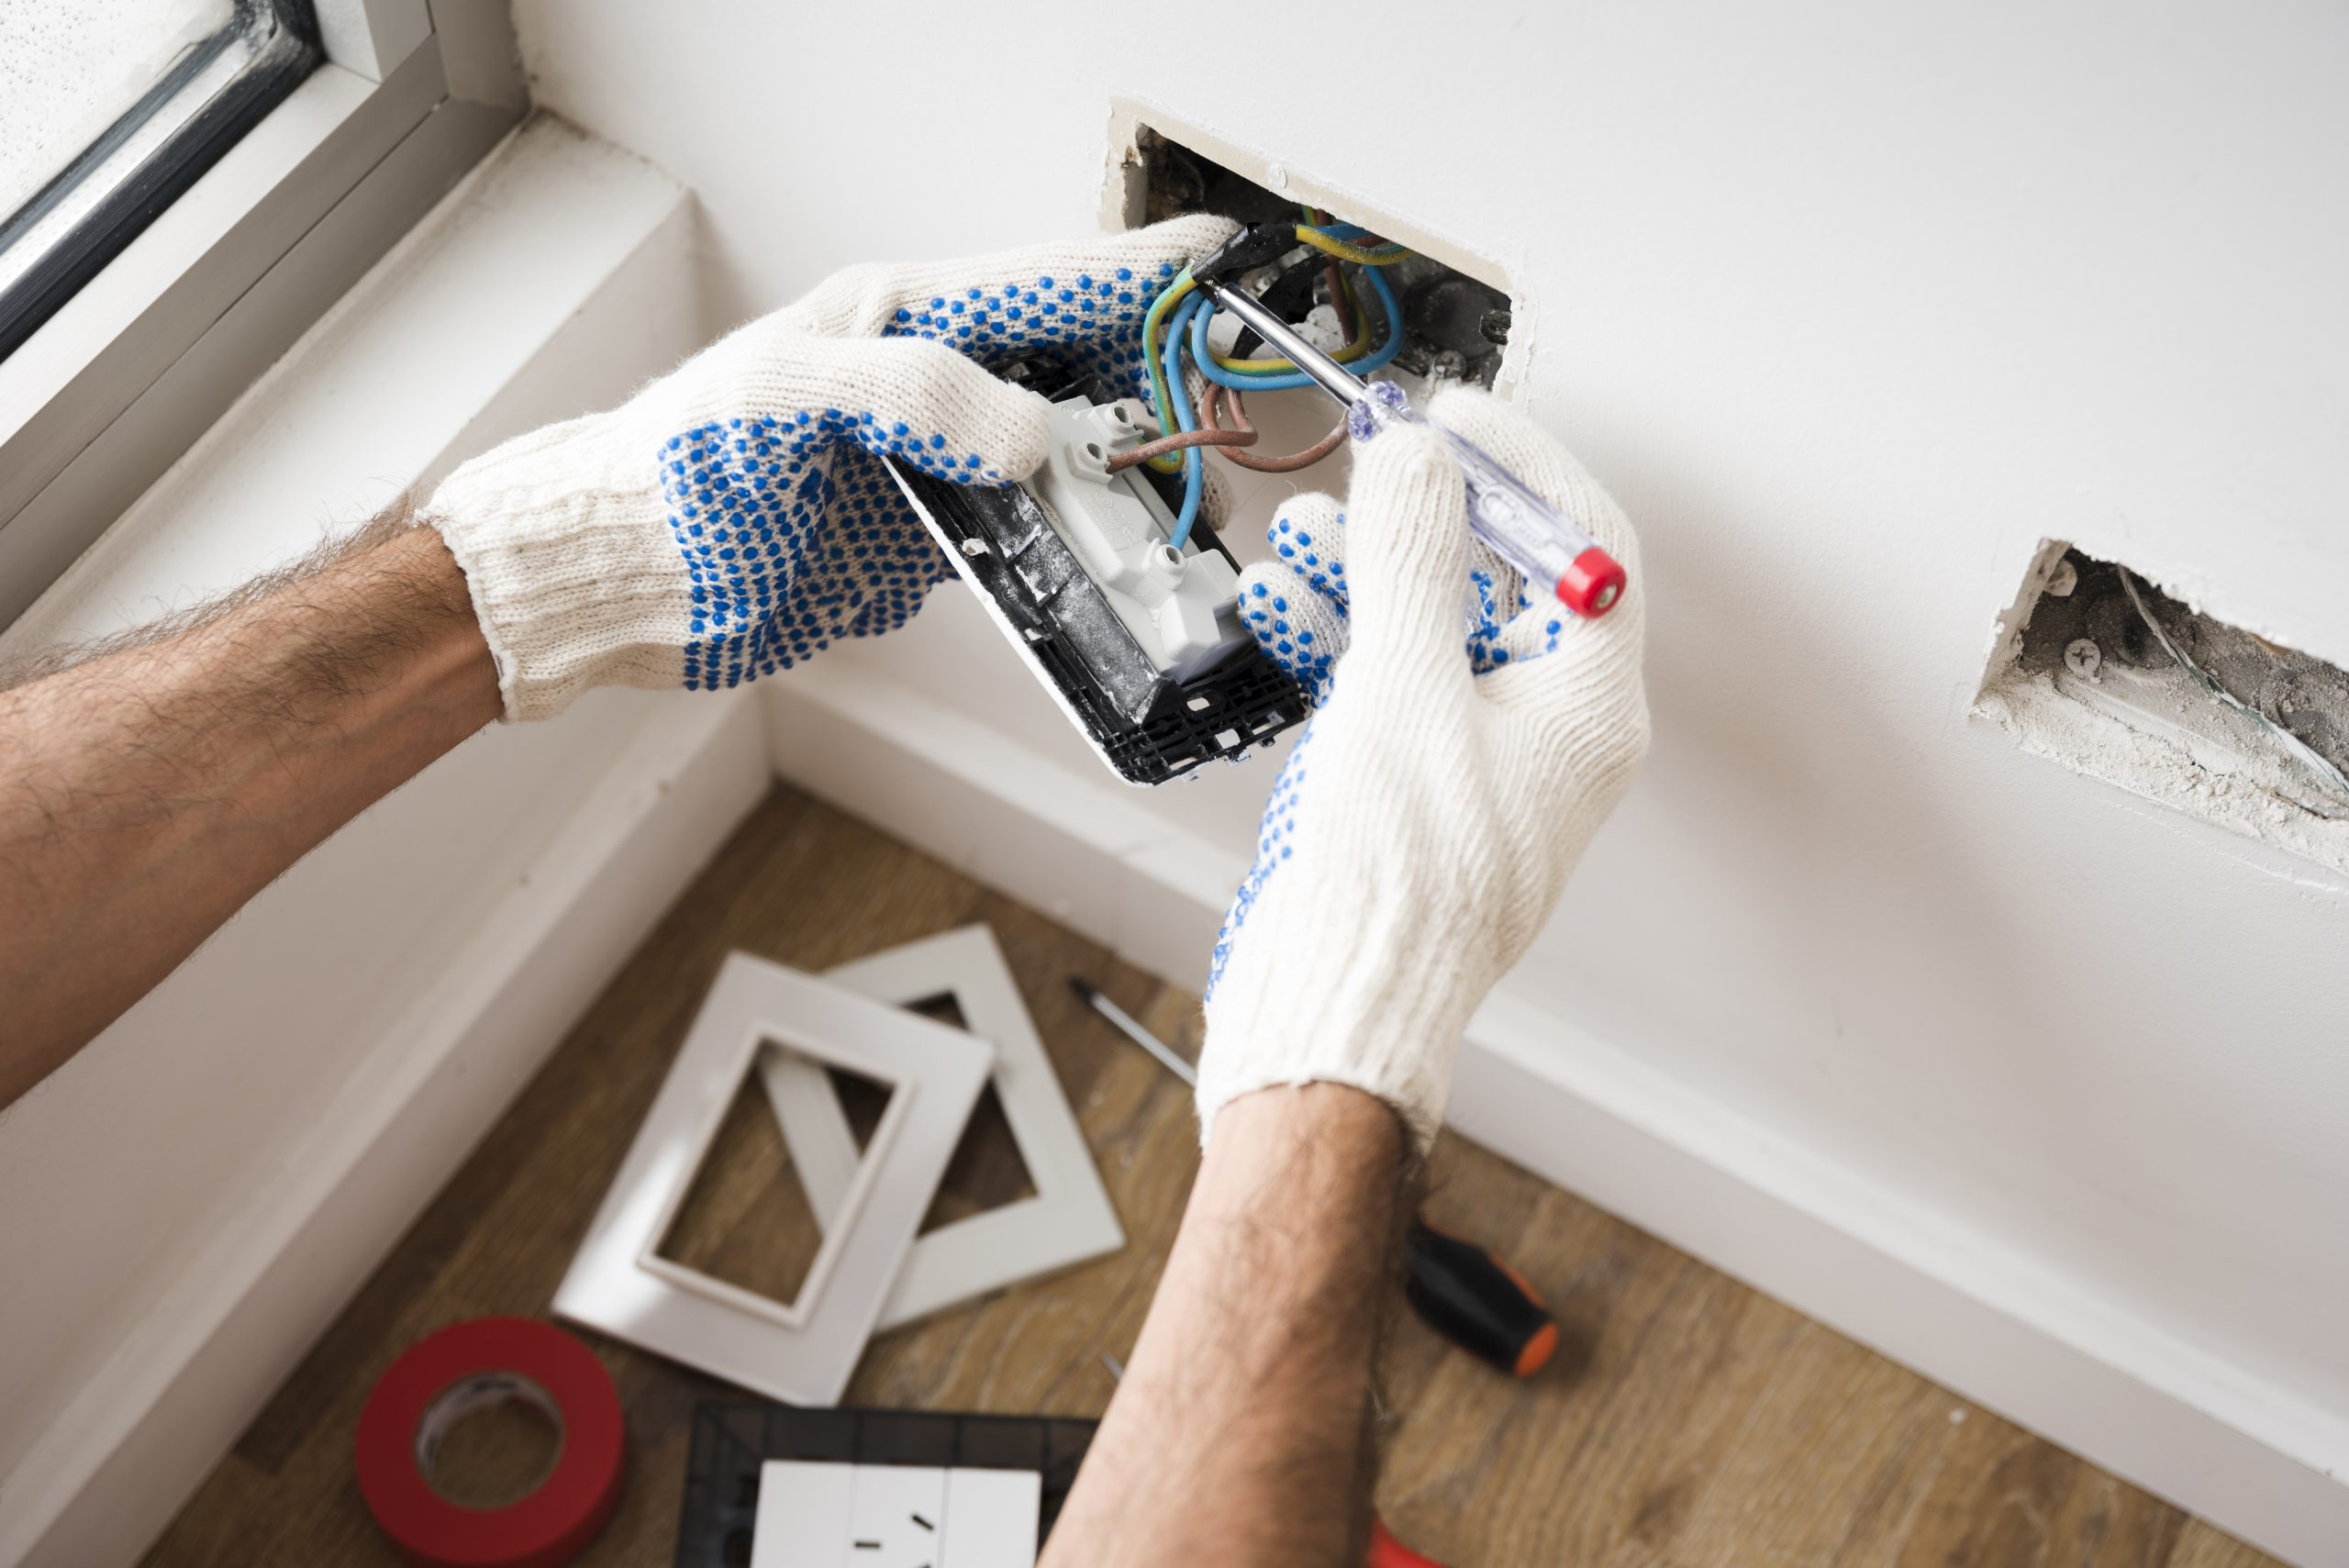 electrician-s-hand-installing-power-socket-home